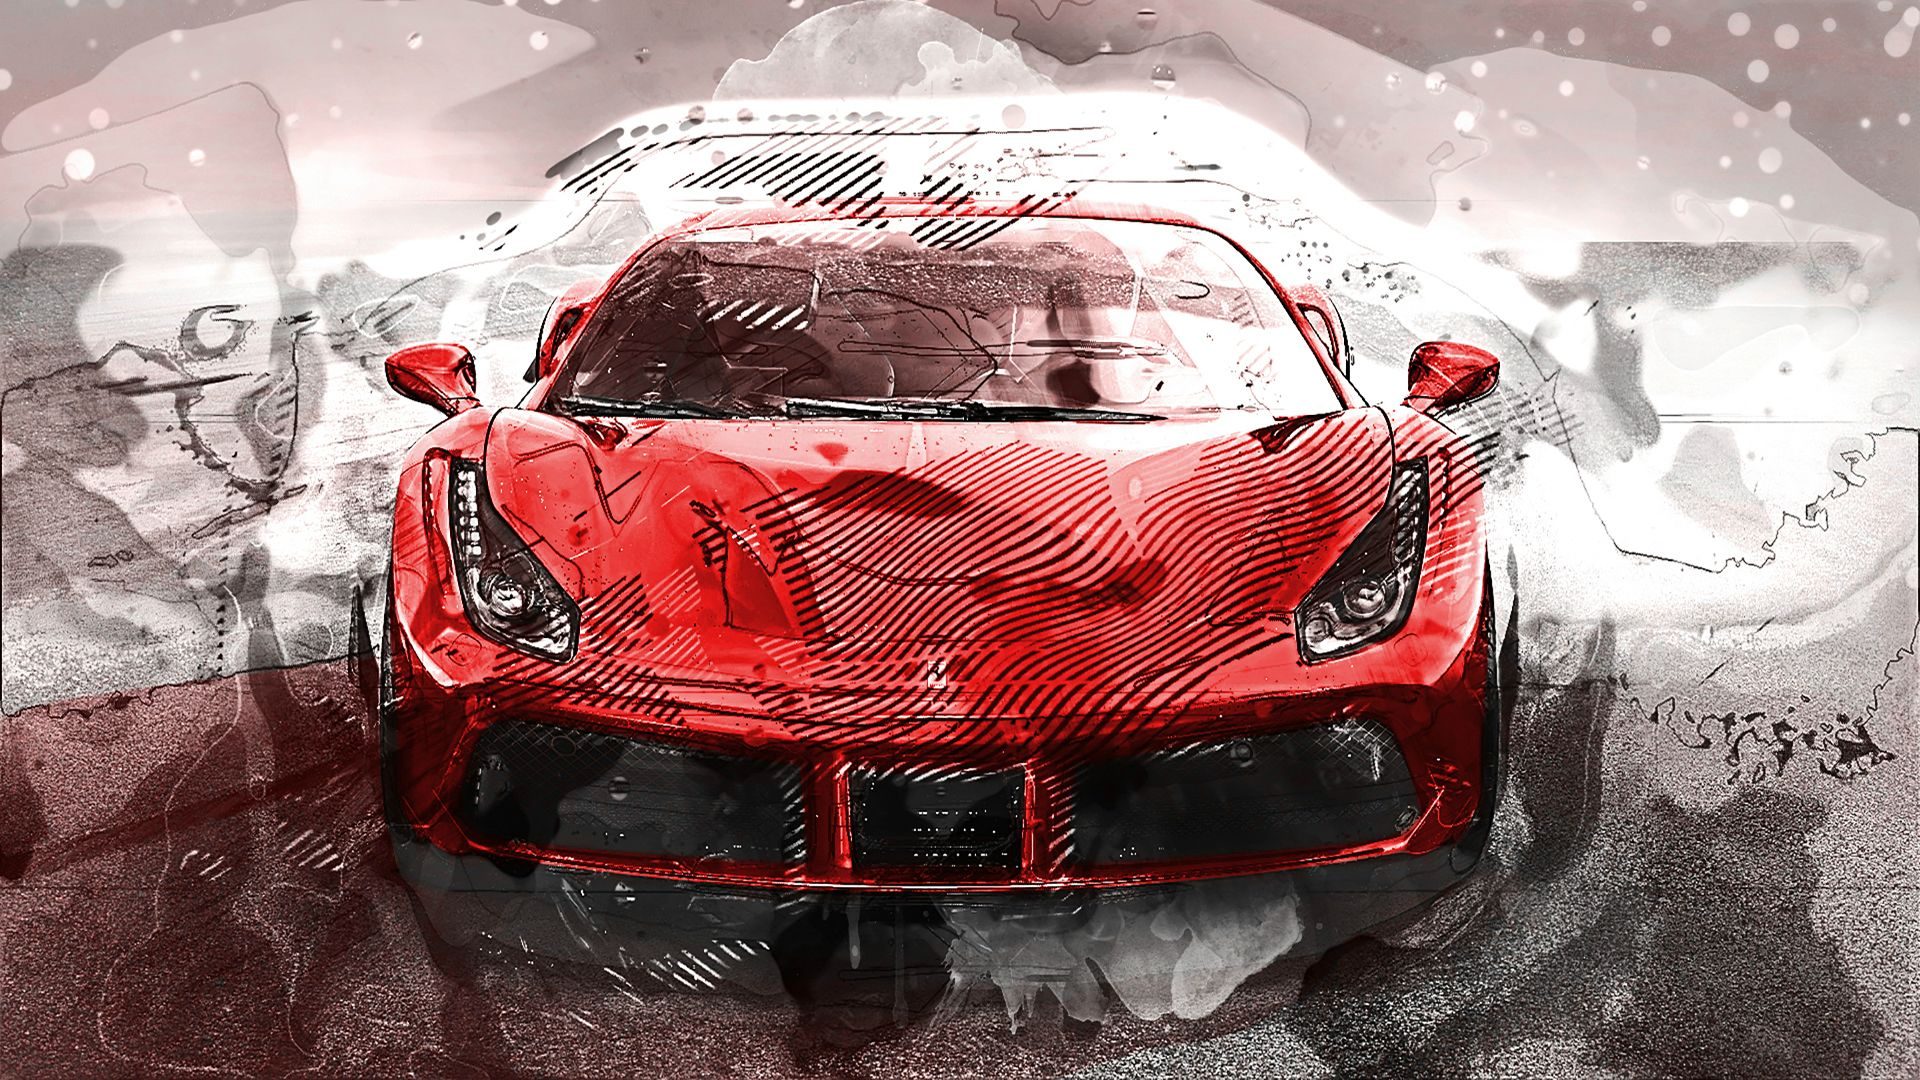 ferrari 488 gtb pictures - Ferrari 488 Iphone Wallpaper